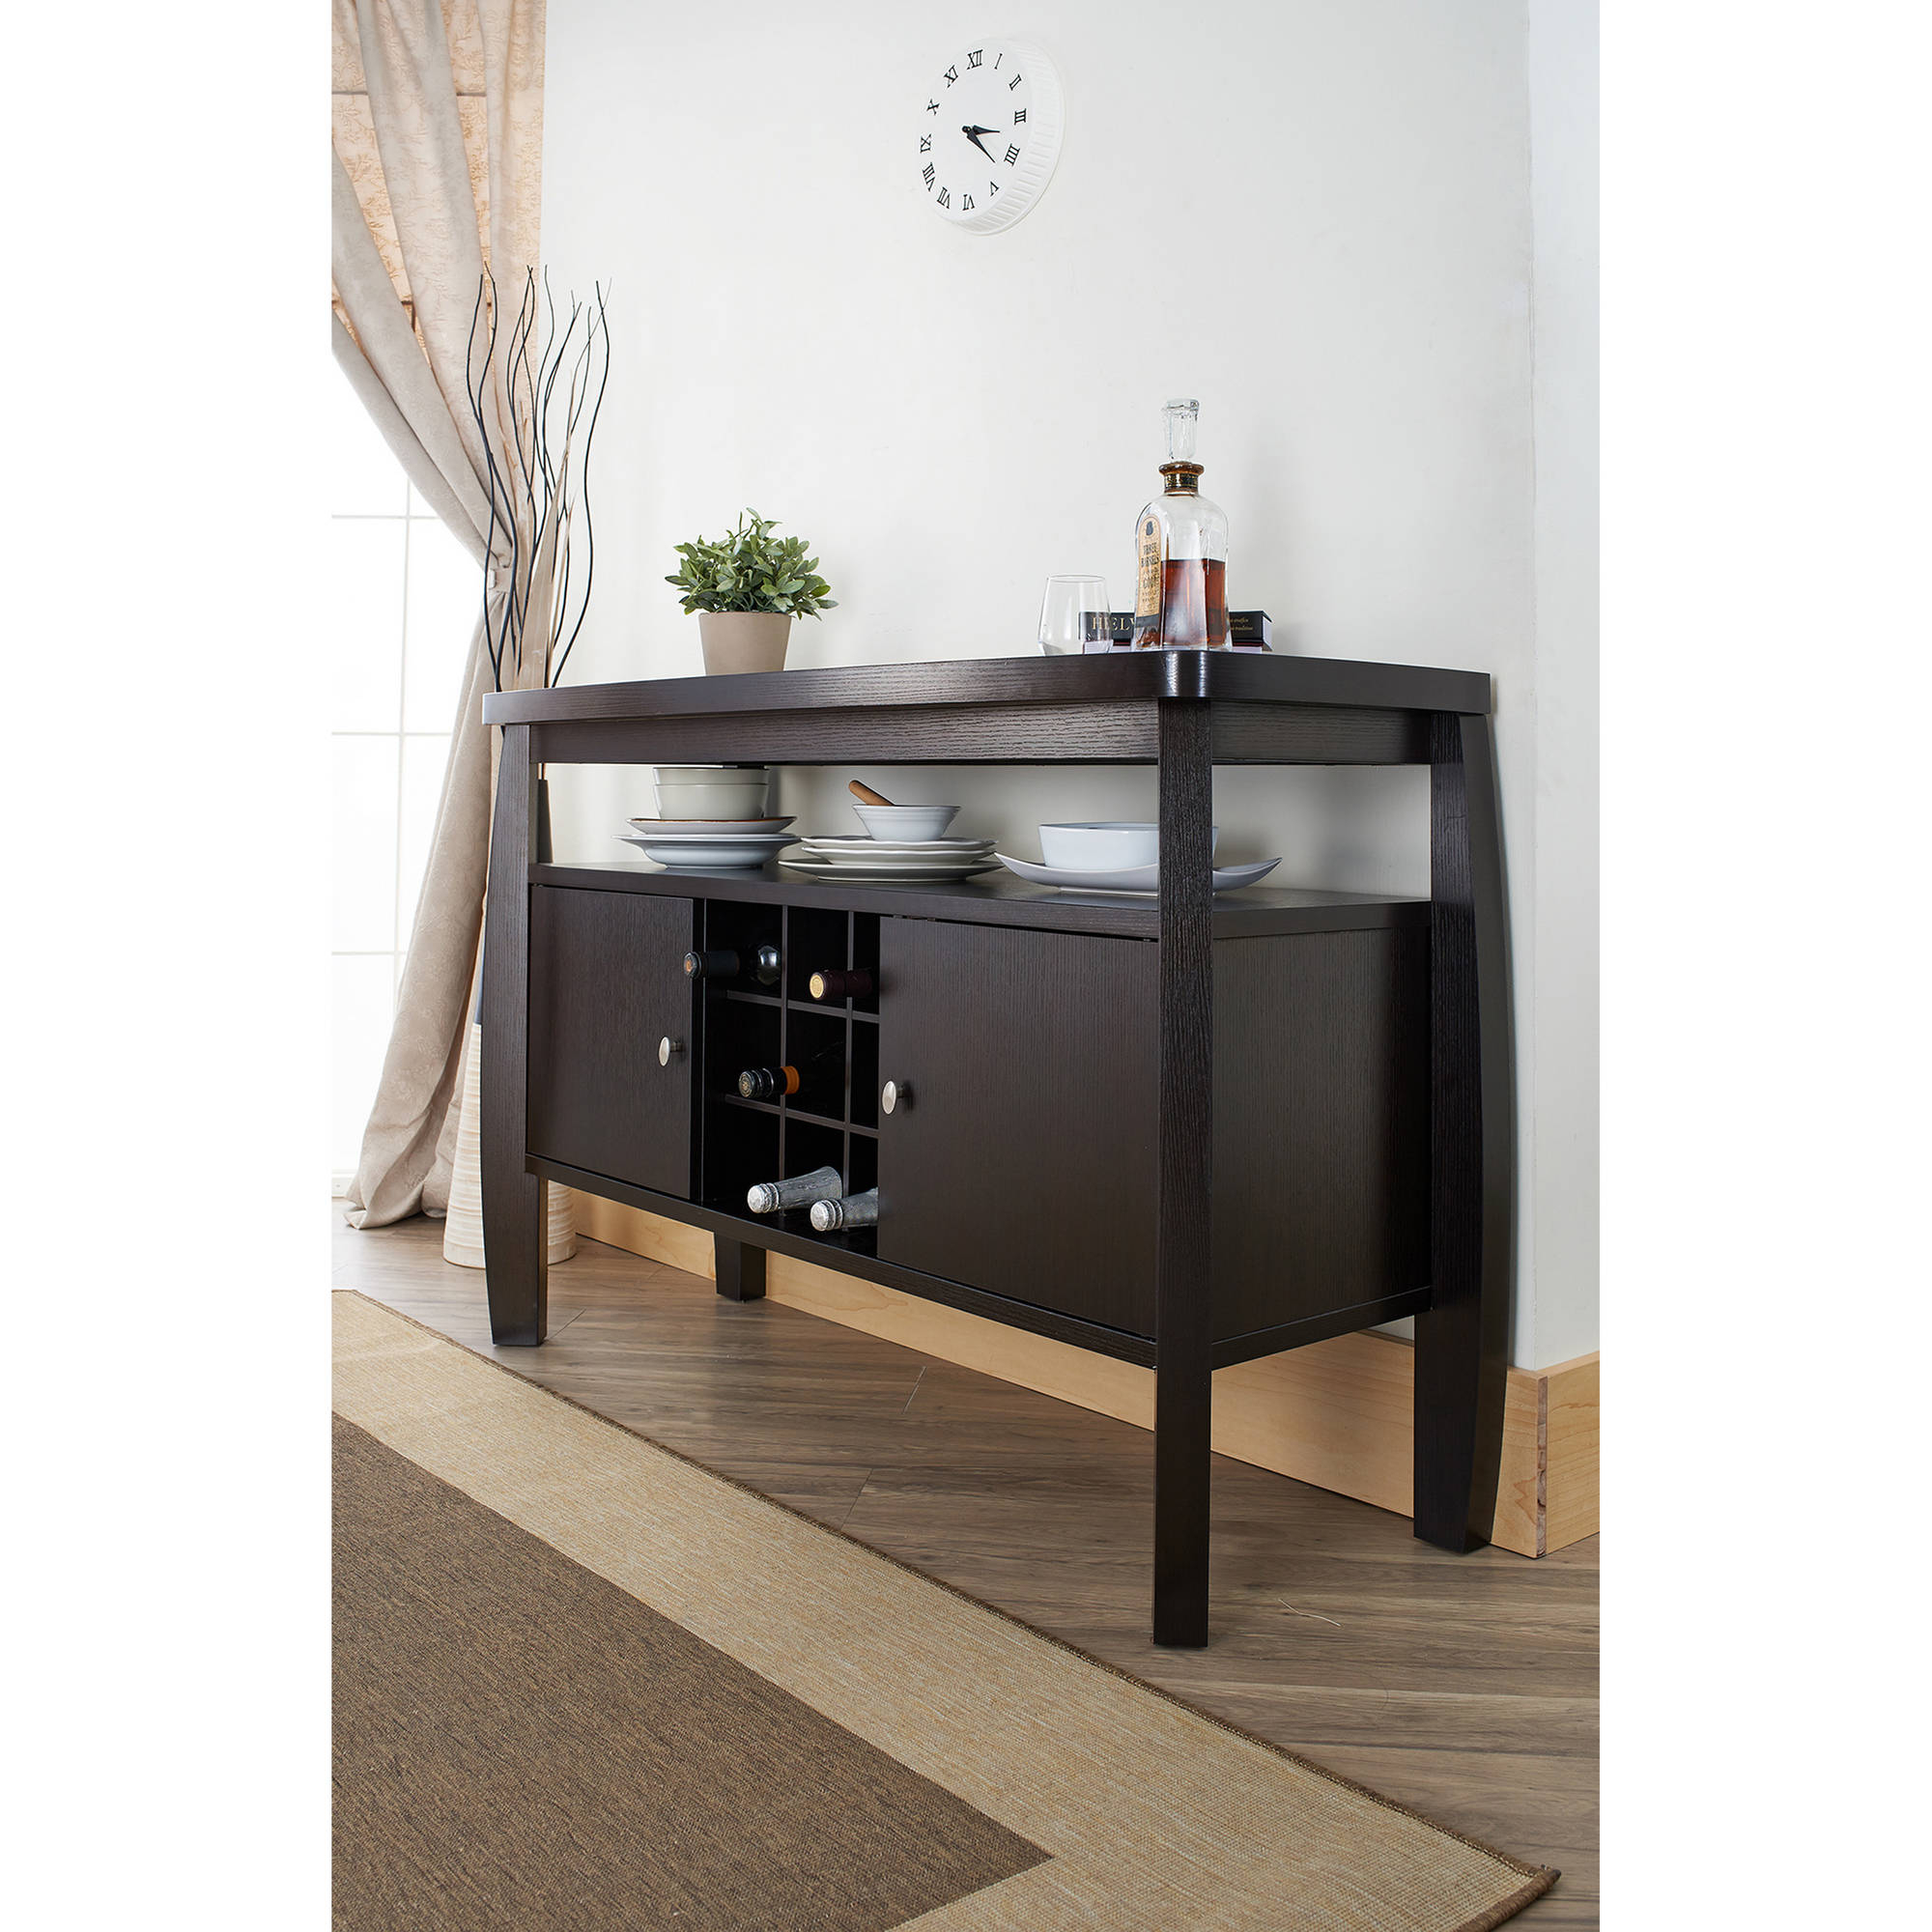 Furniture Of America Vera Contemporary Multi Storage Buffet Table, Espresso Intended For Contemporary Espresso 2 Cabinet Dining Buffets (View 13 of 30)